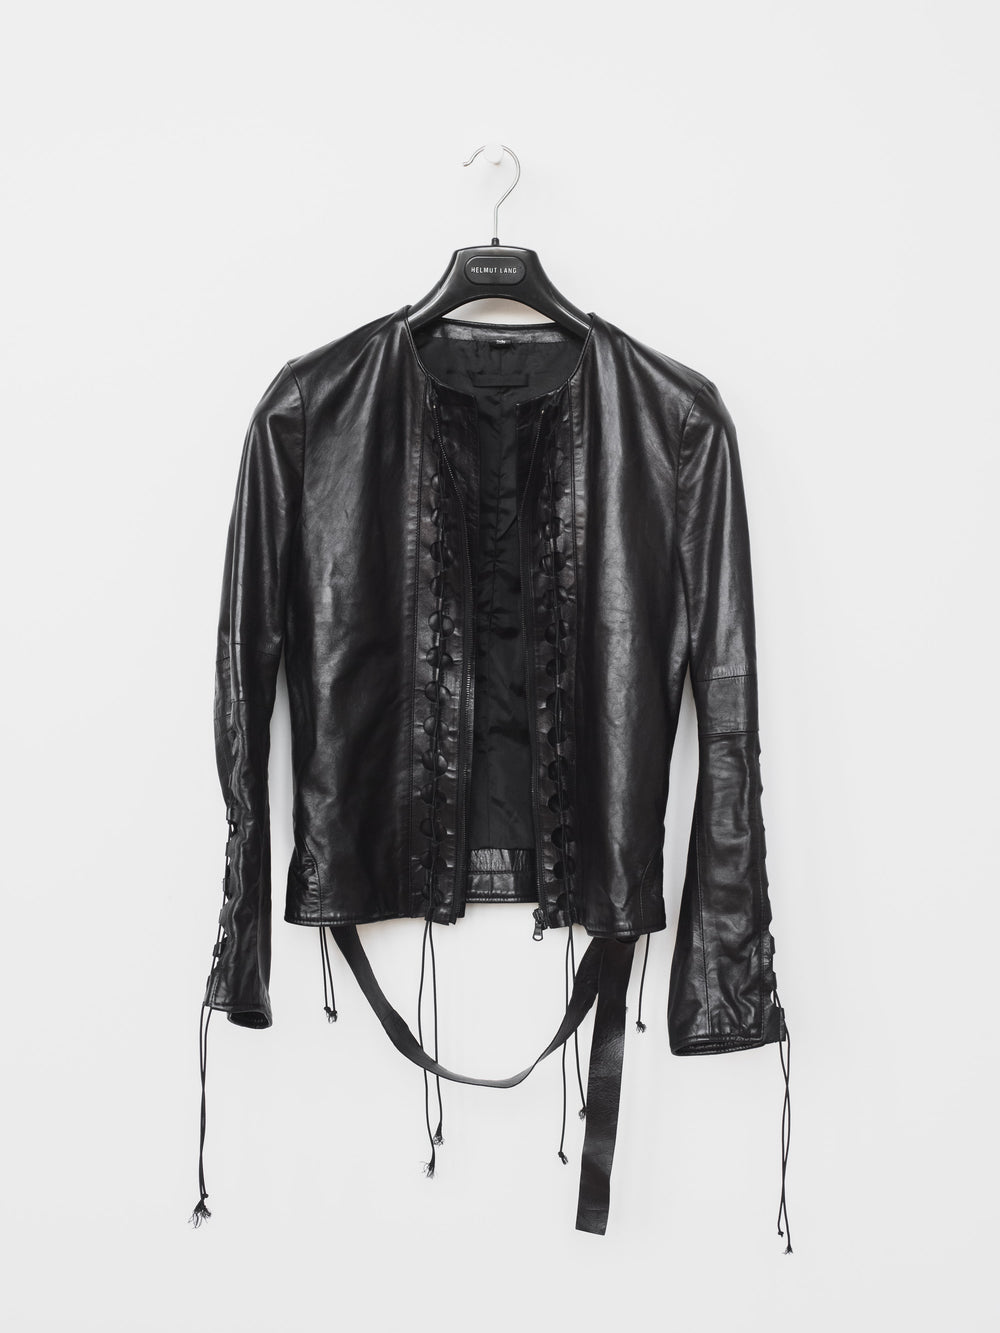 Helmut Lang SS01 Lace Up Corset Leather Jacket